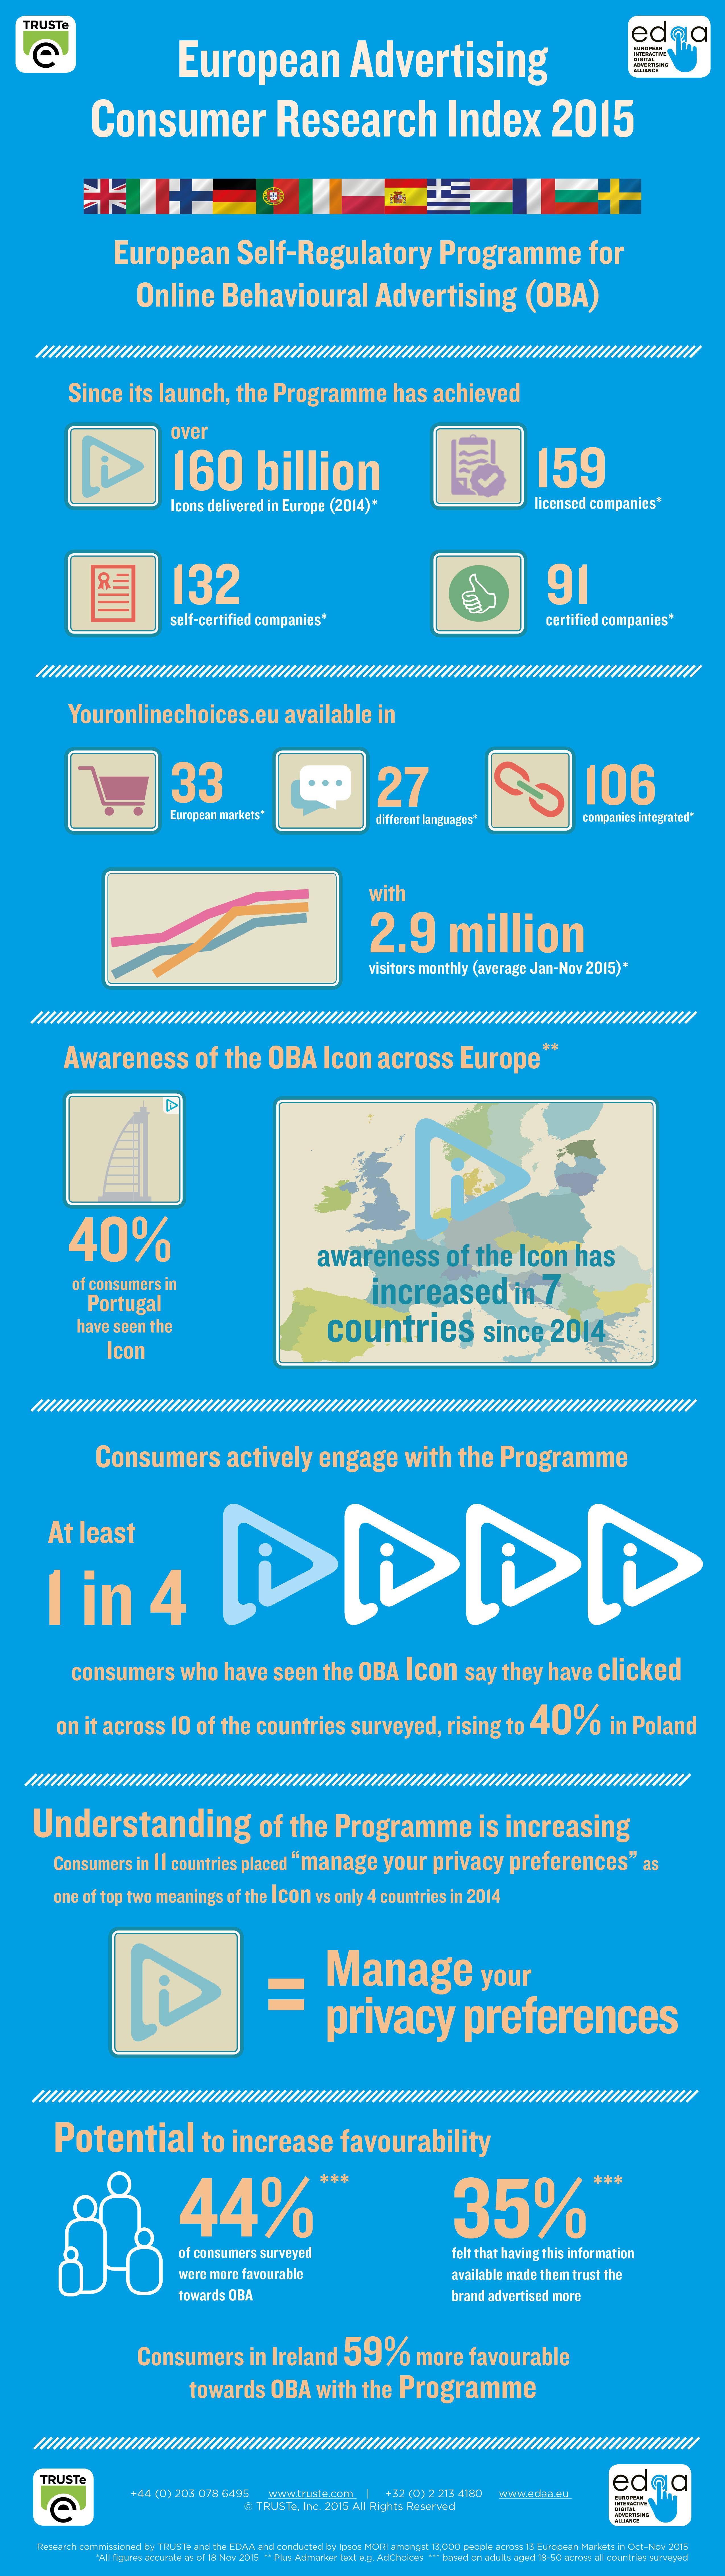 Infographic: European Advertising Consumer Research Index 2015